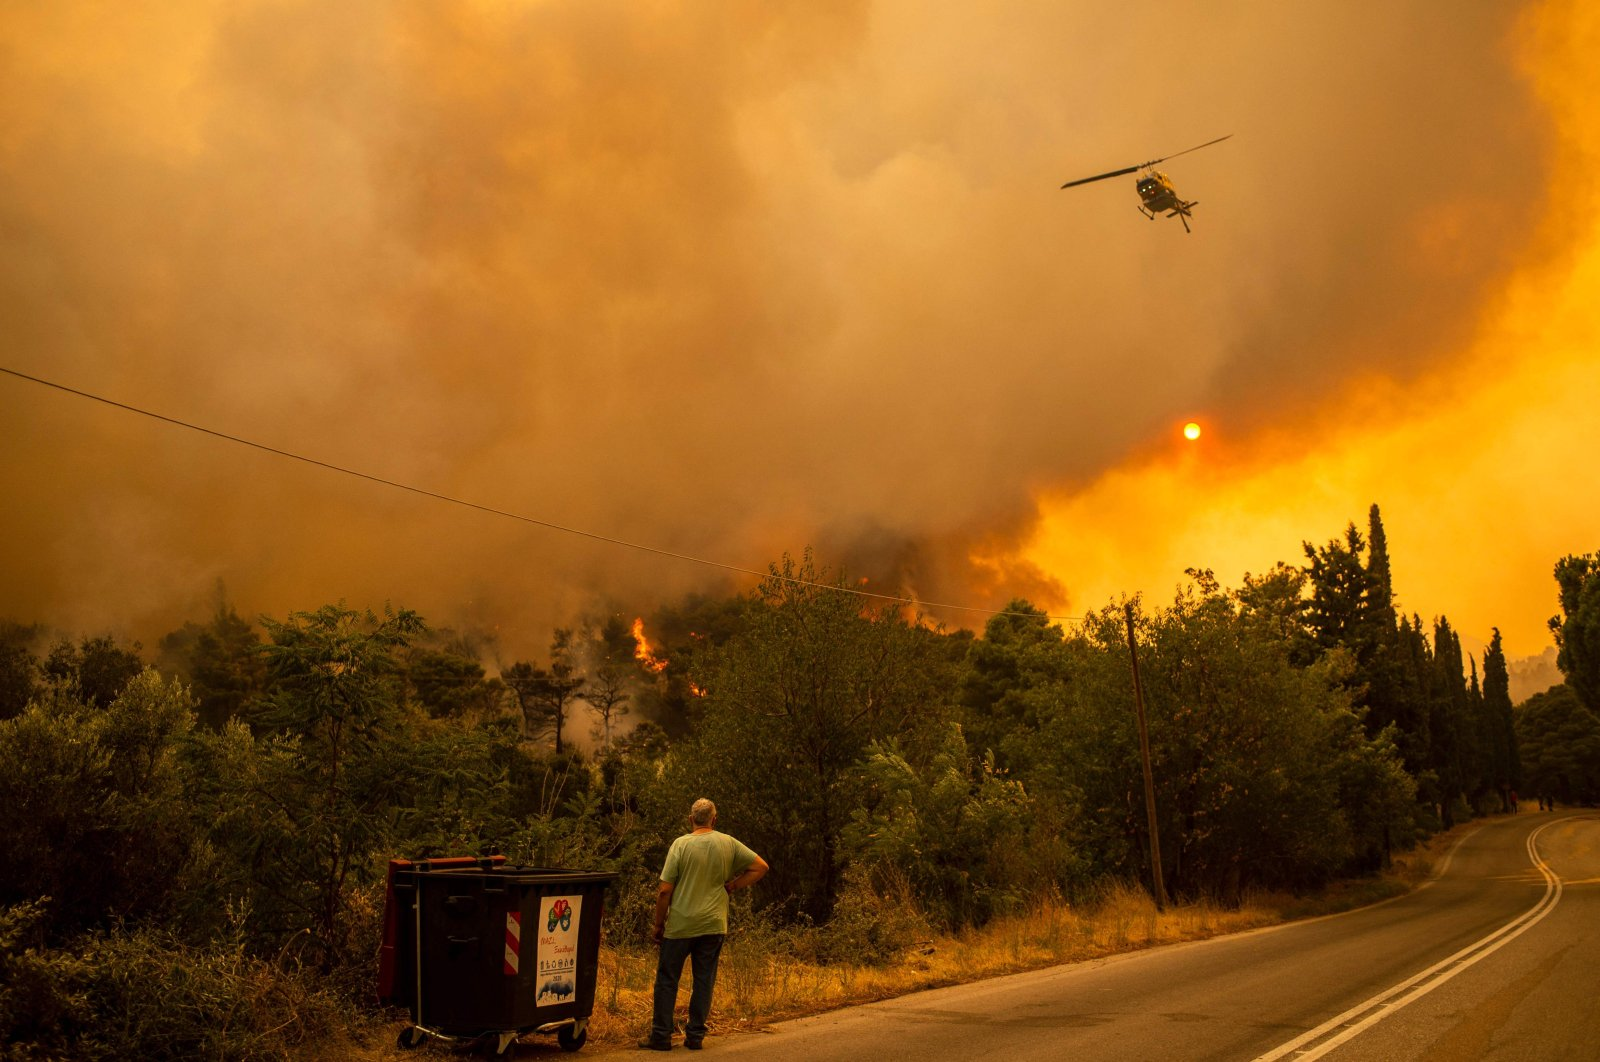 A man watches a helicopter during a fire in the village of Villa, northwest of Athens, Greece, Aug. 18, 2021. (AFP Photo)